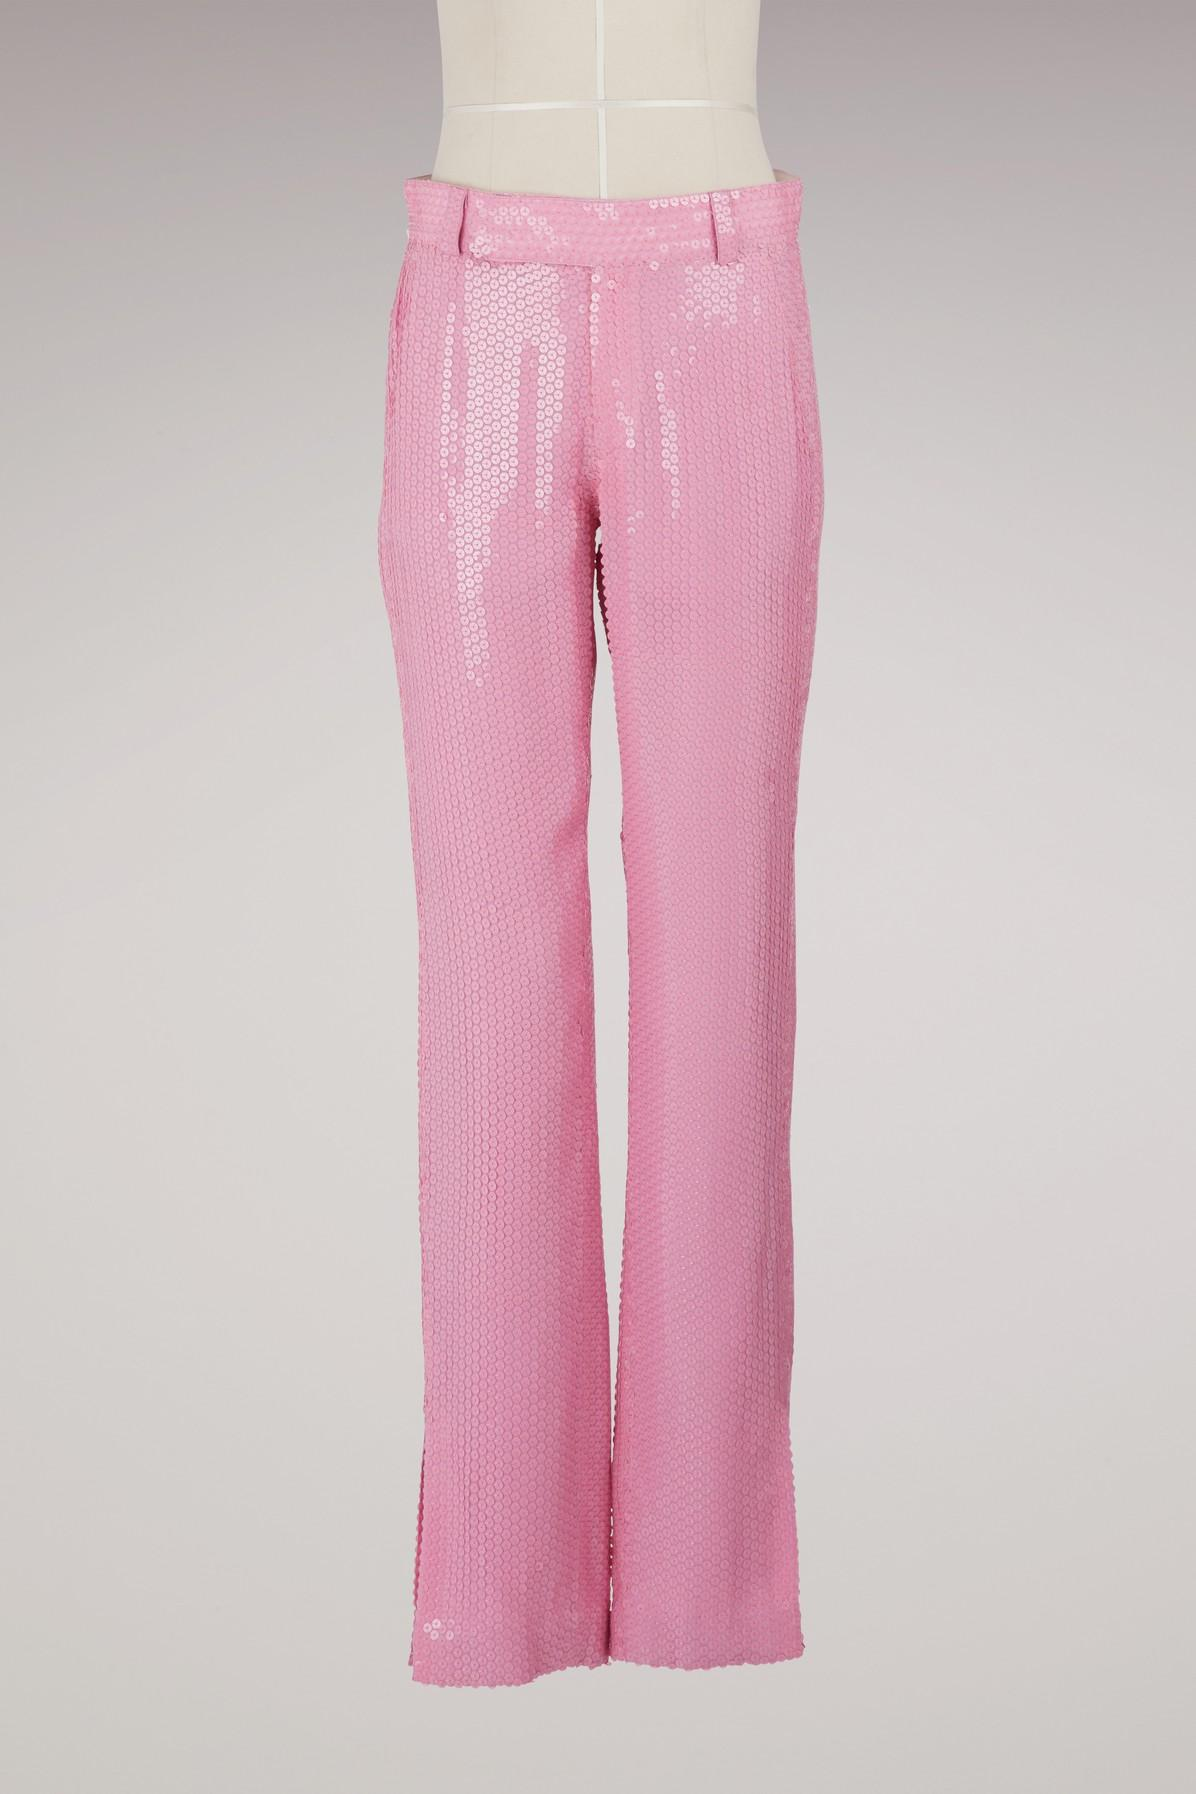 Msgm Straight-leg Sequined Pants In Pink